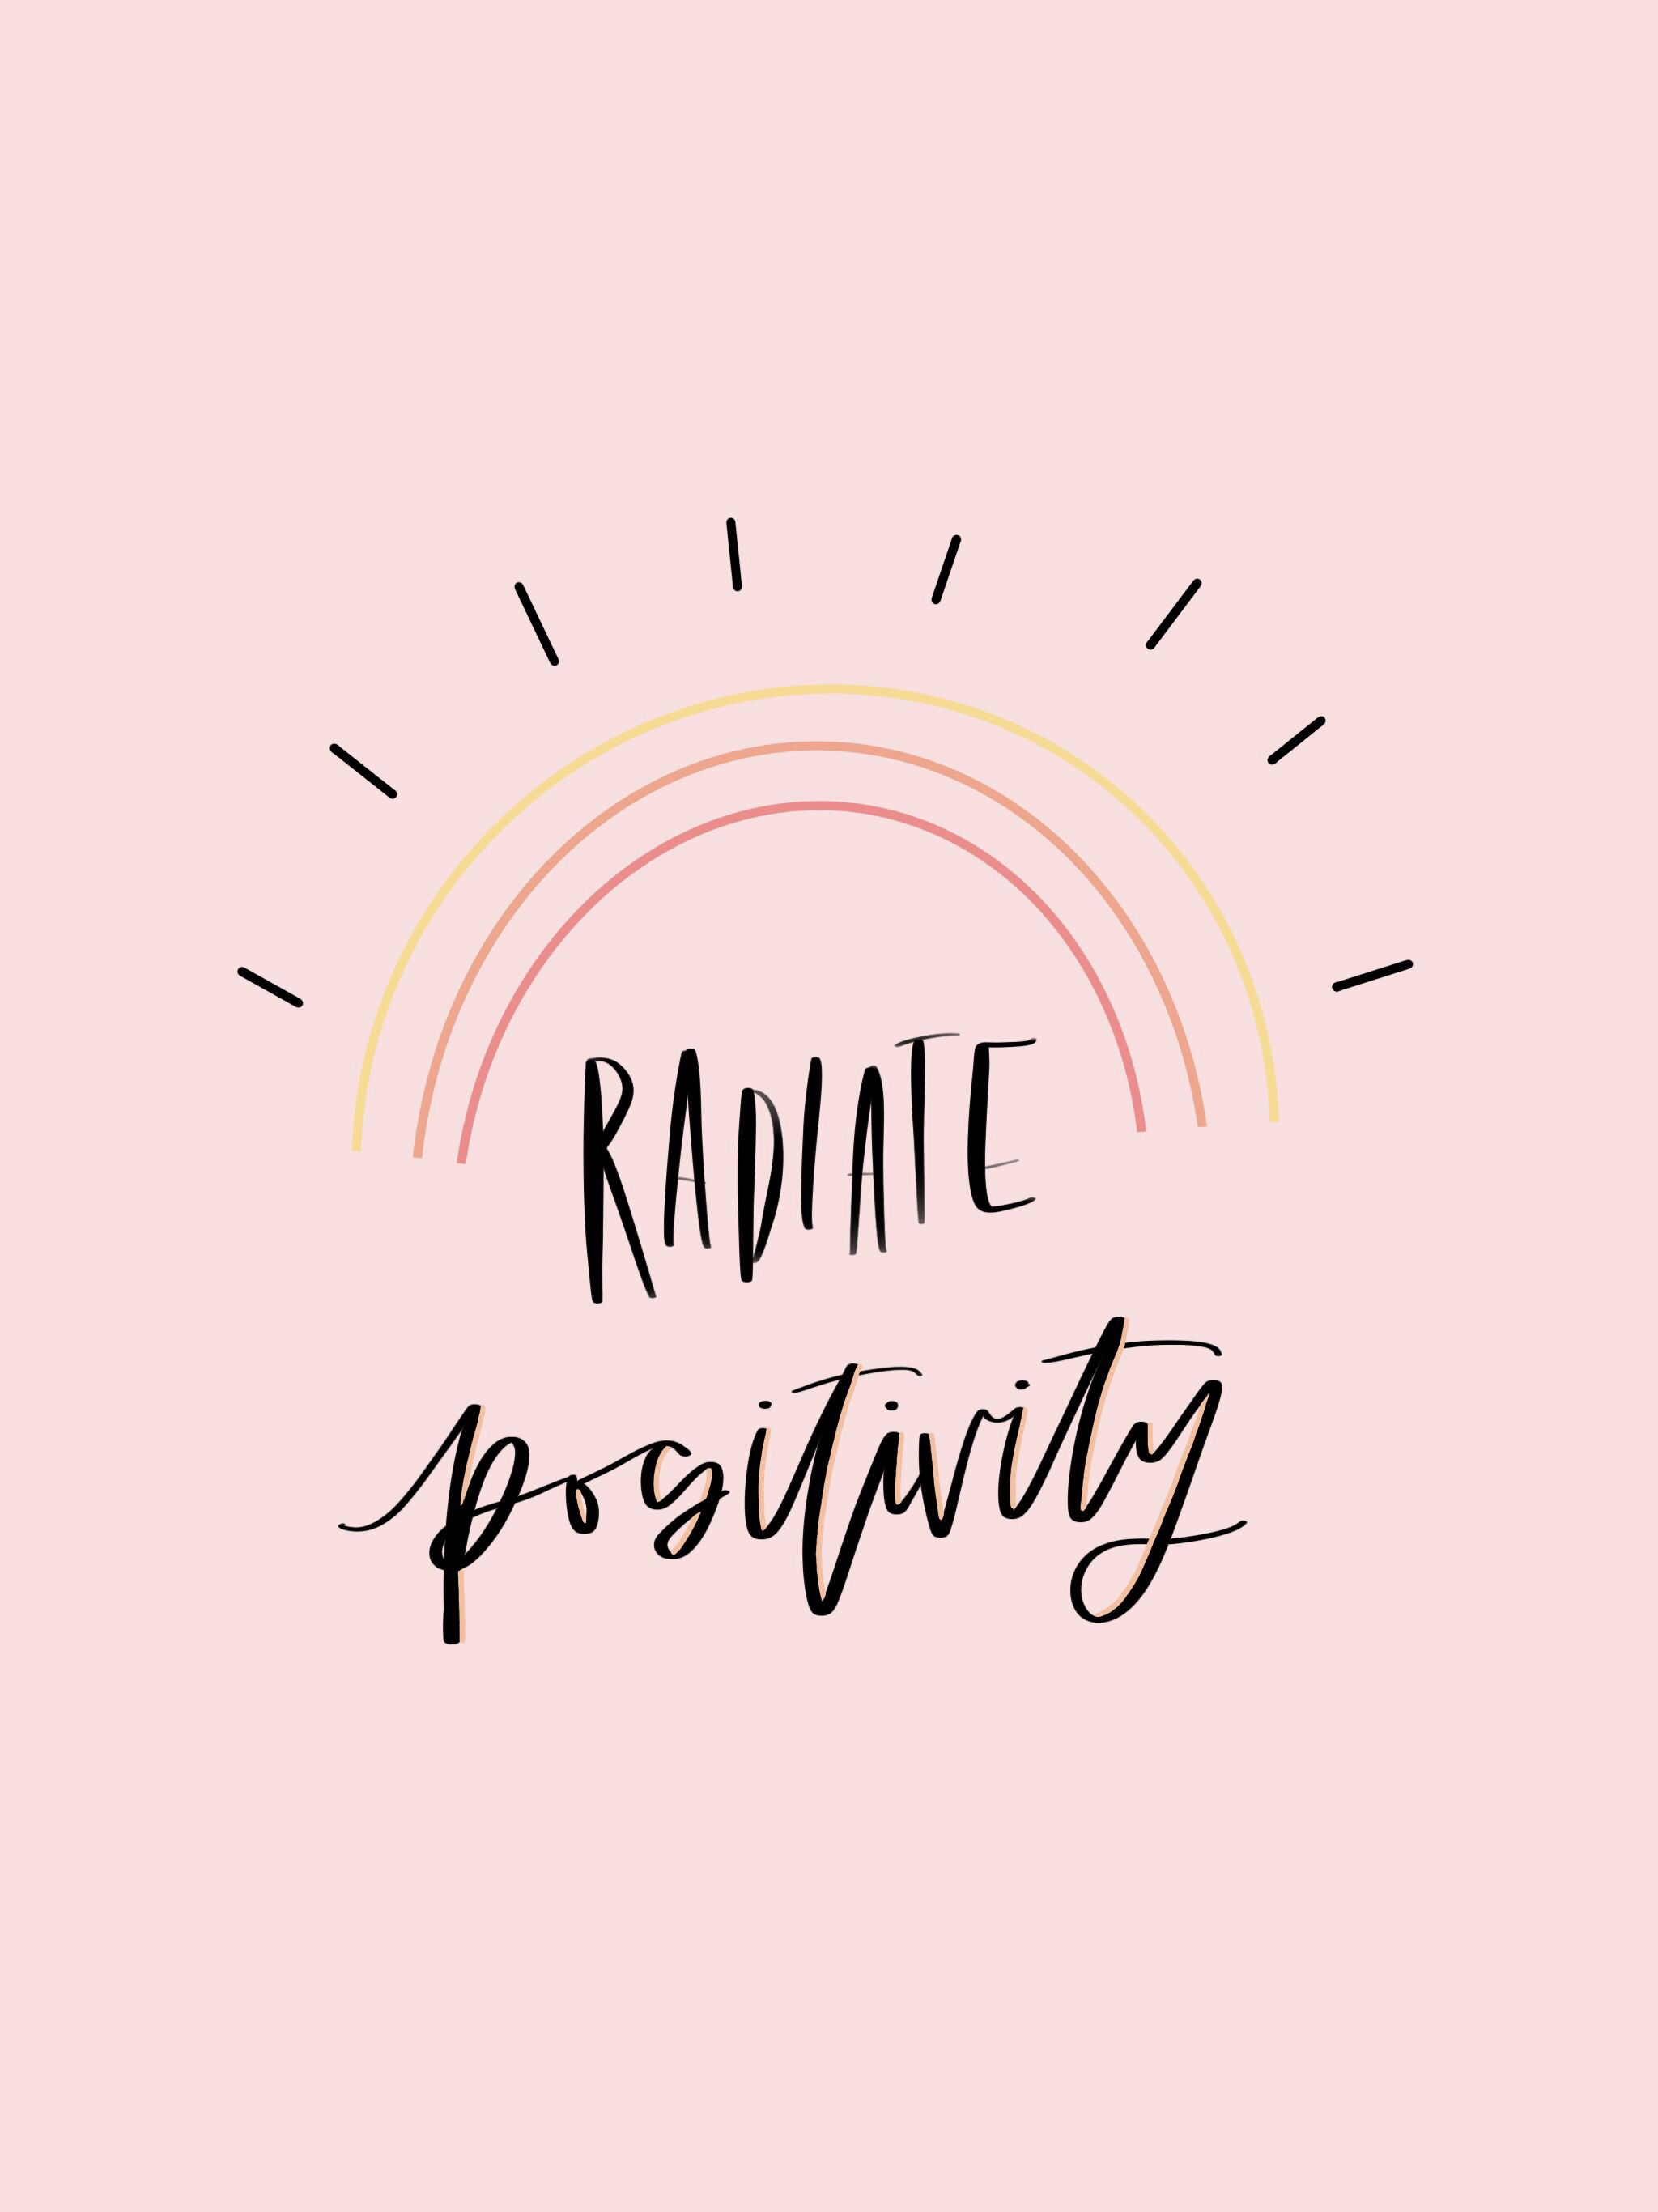 Radiate Positivity Positive Quotes Wallpaper Positive Quotes